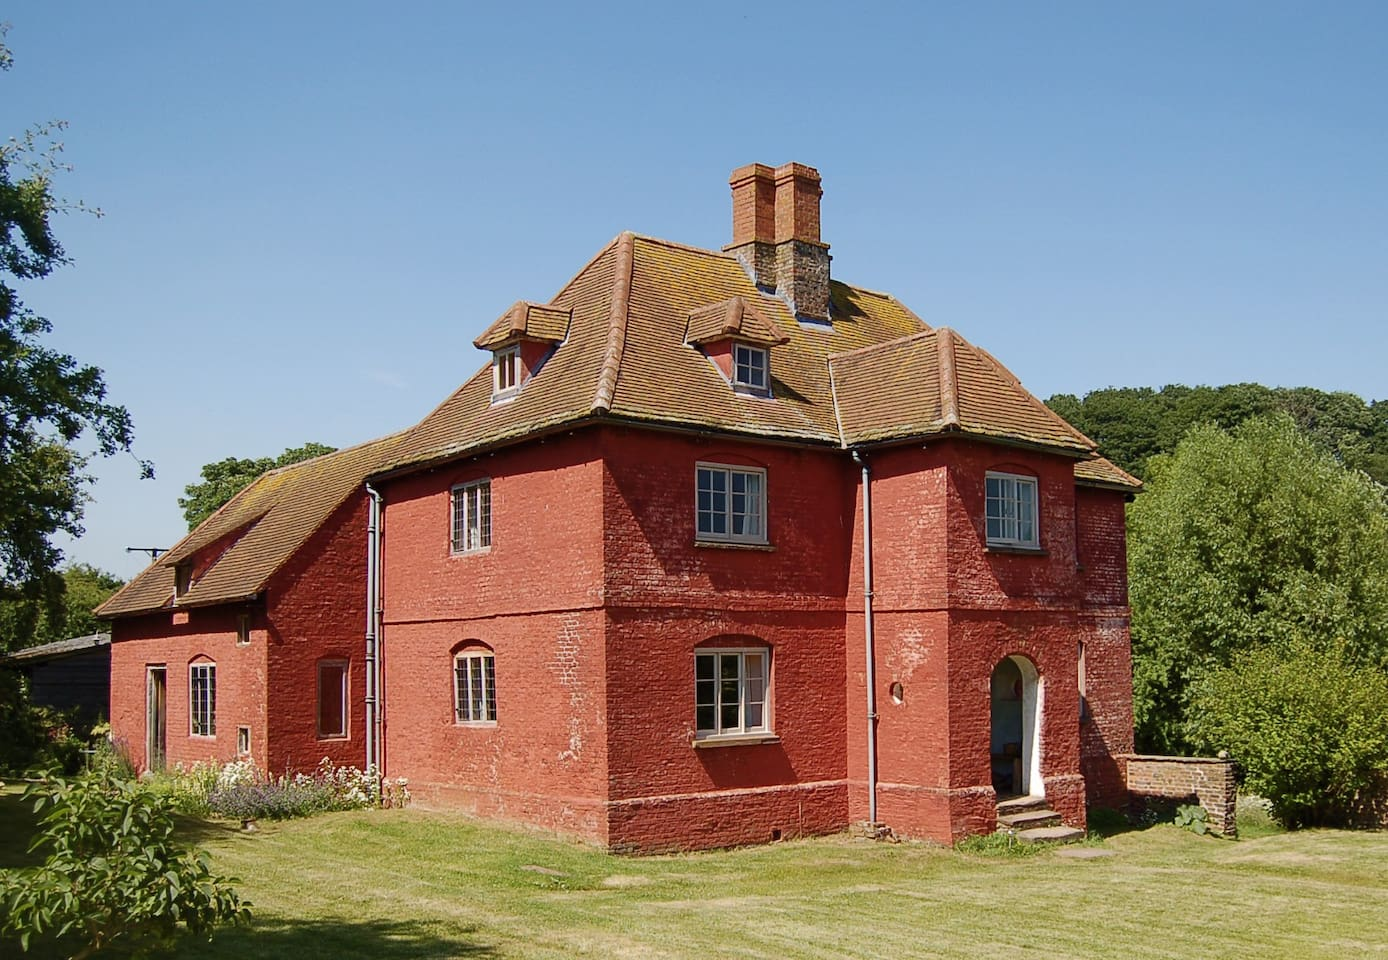 Upper Red House = a 17th century farm house.